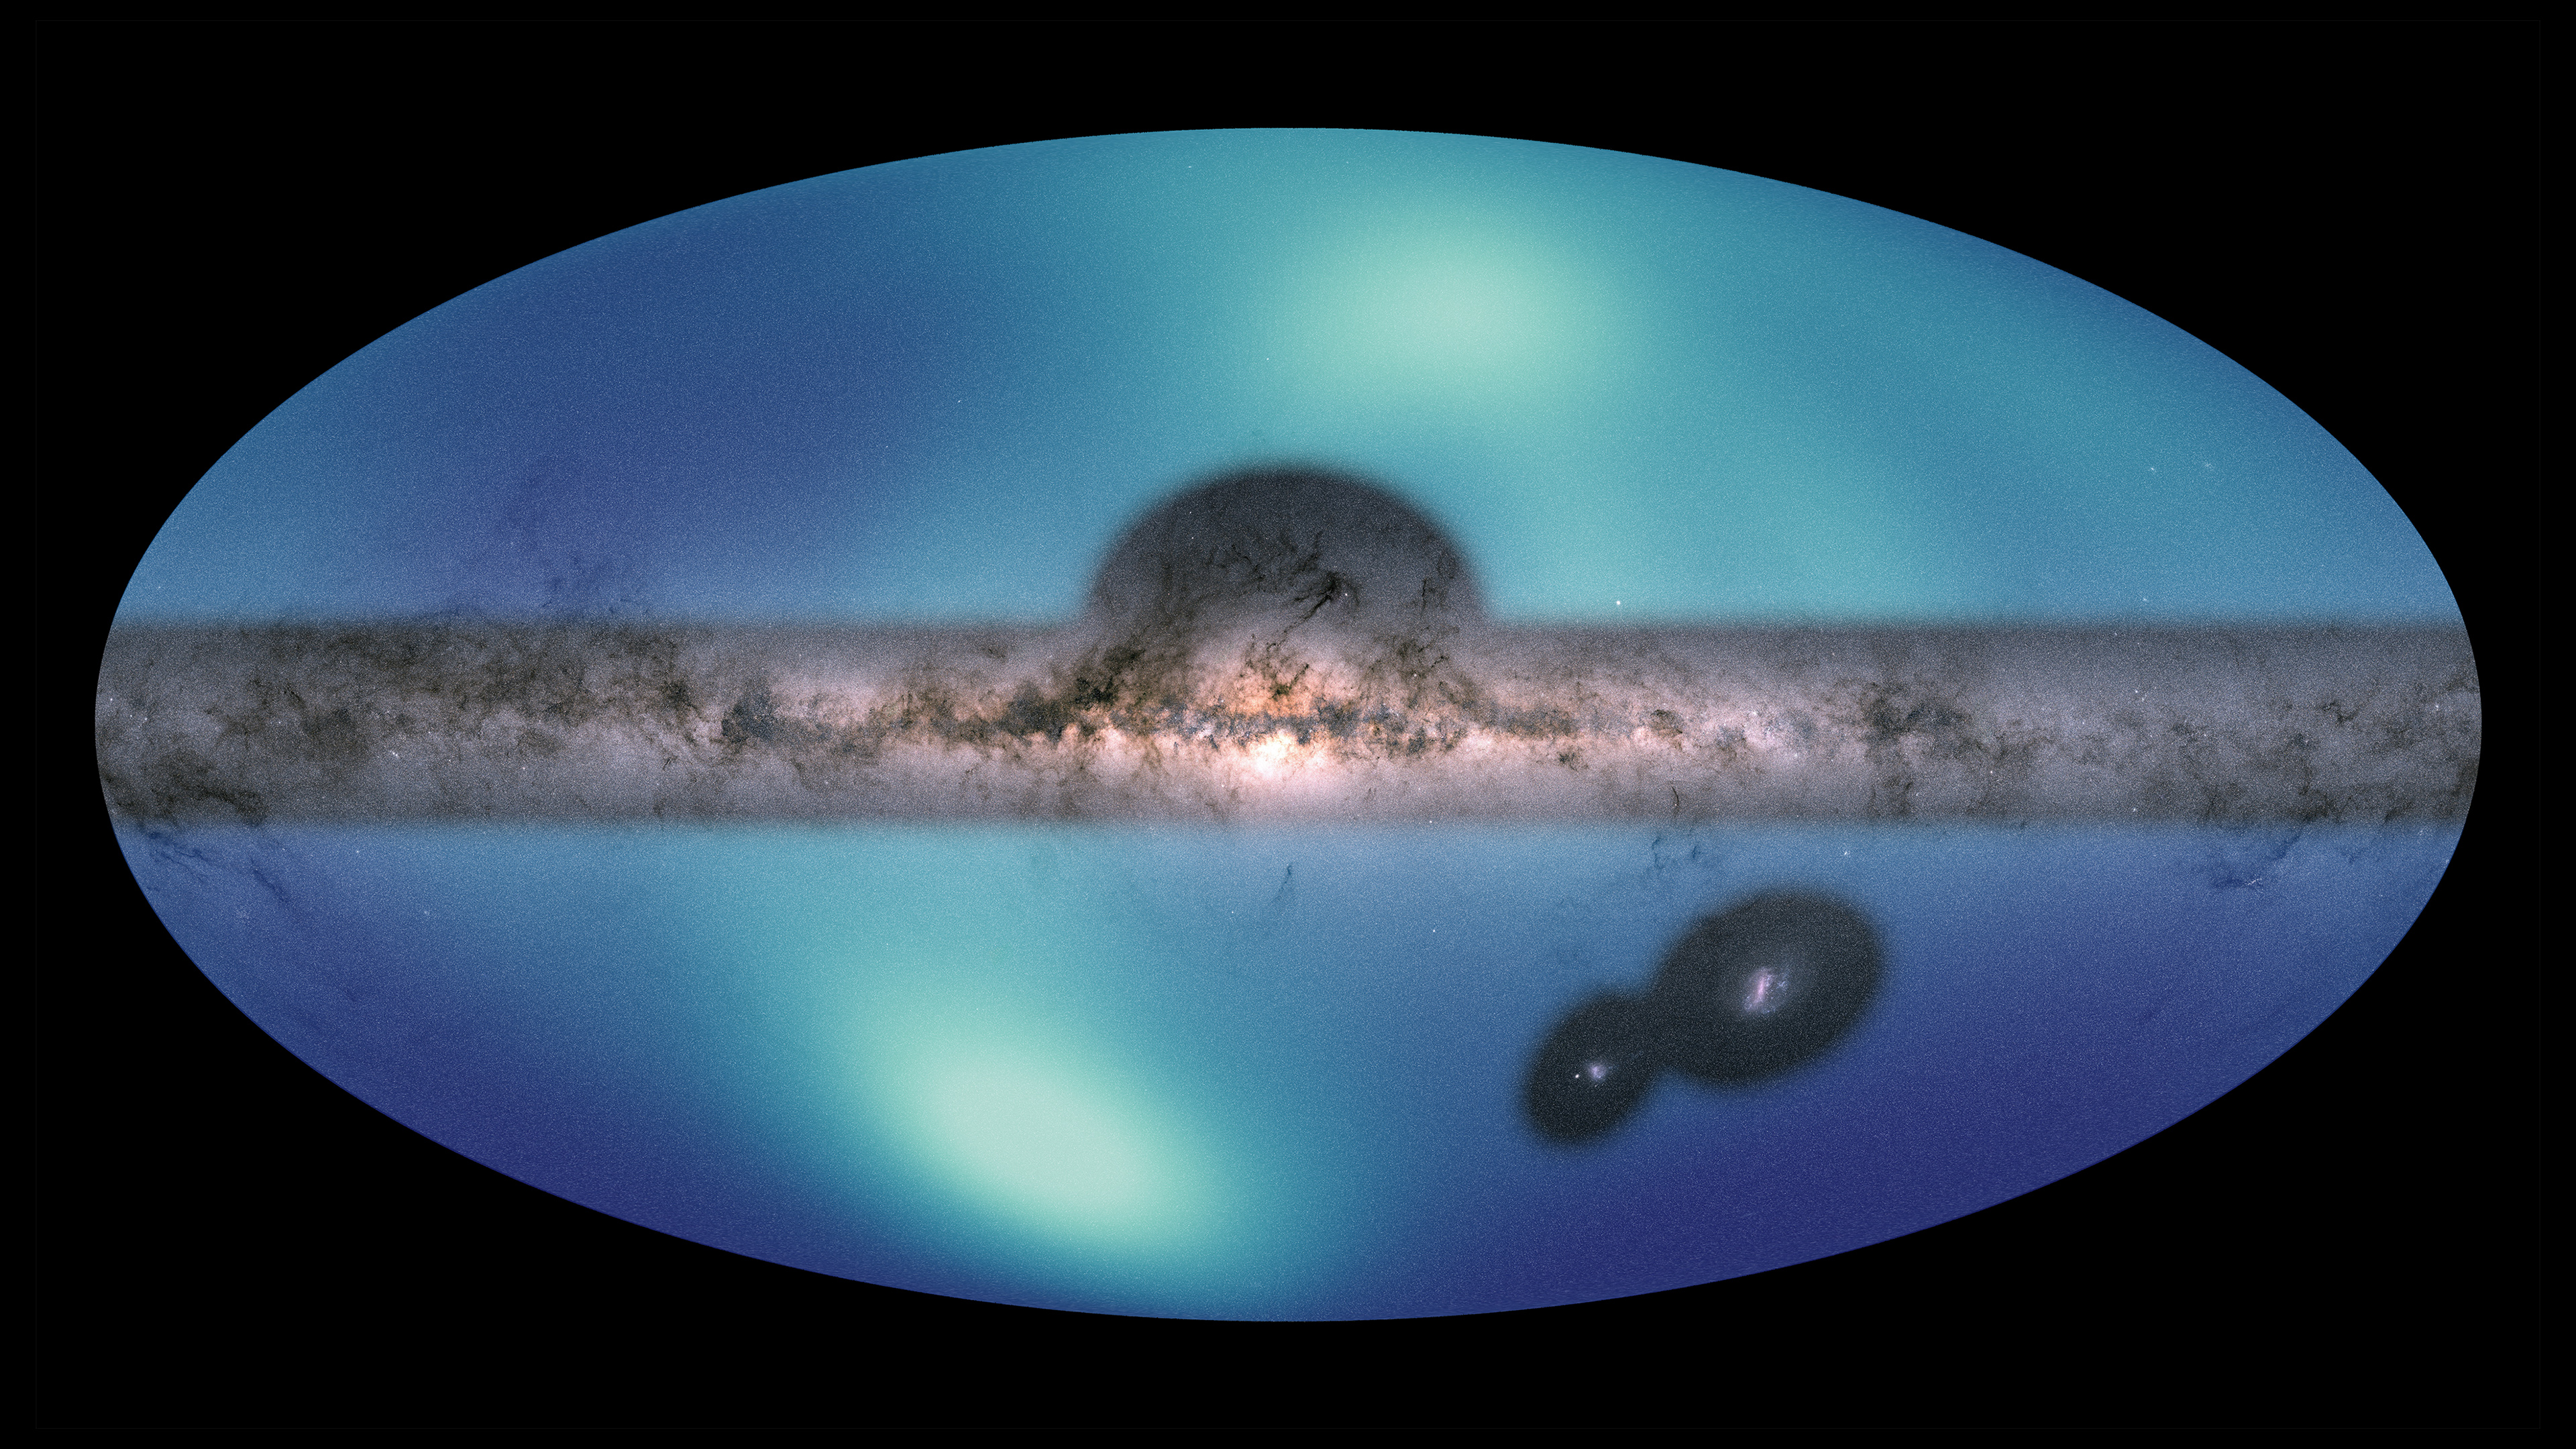 News . Astronomers Release New All-Sky Map of Milky Way's Outer Reaches - Jet Propulsion Laboratory